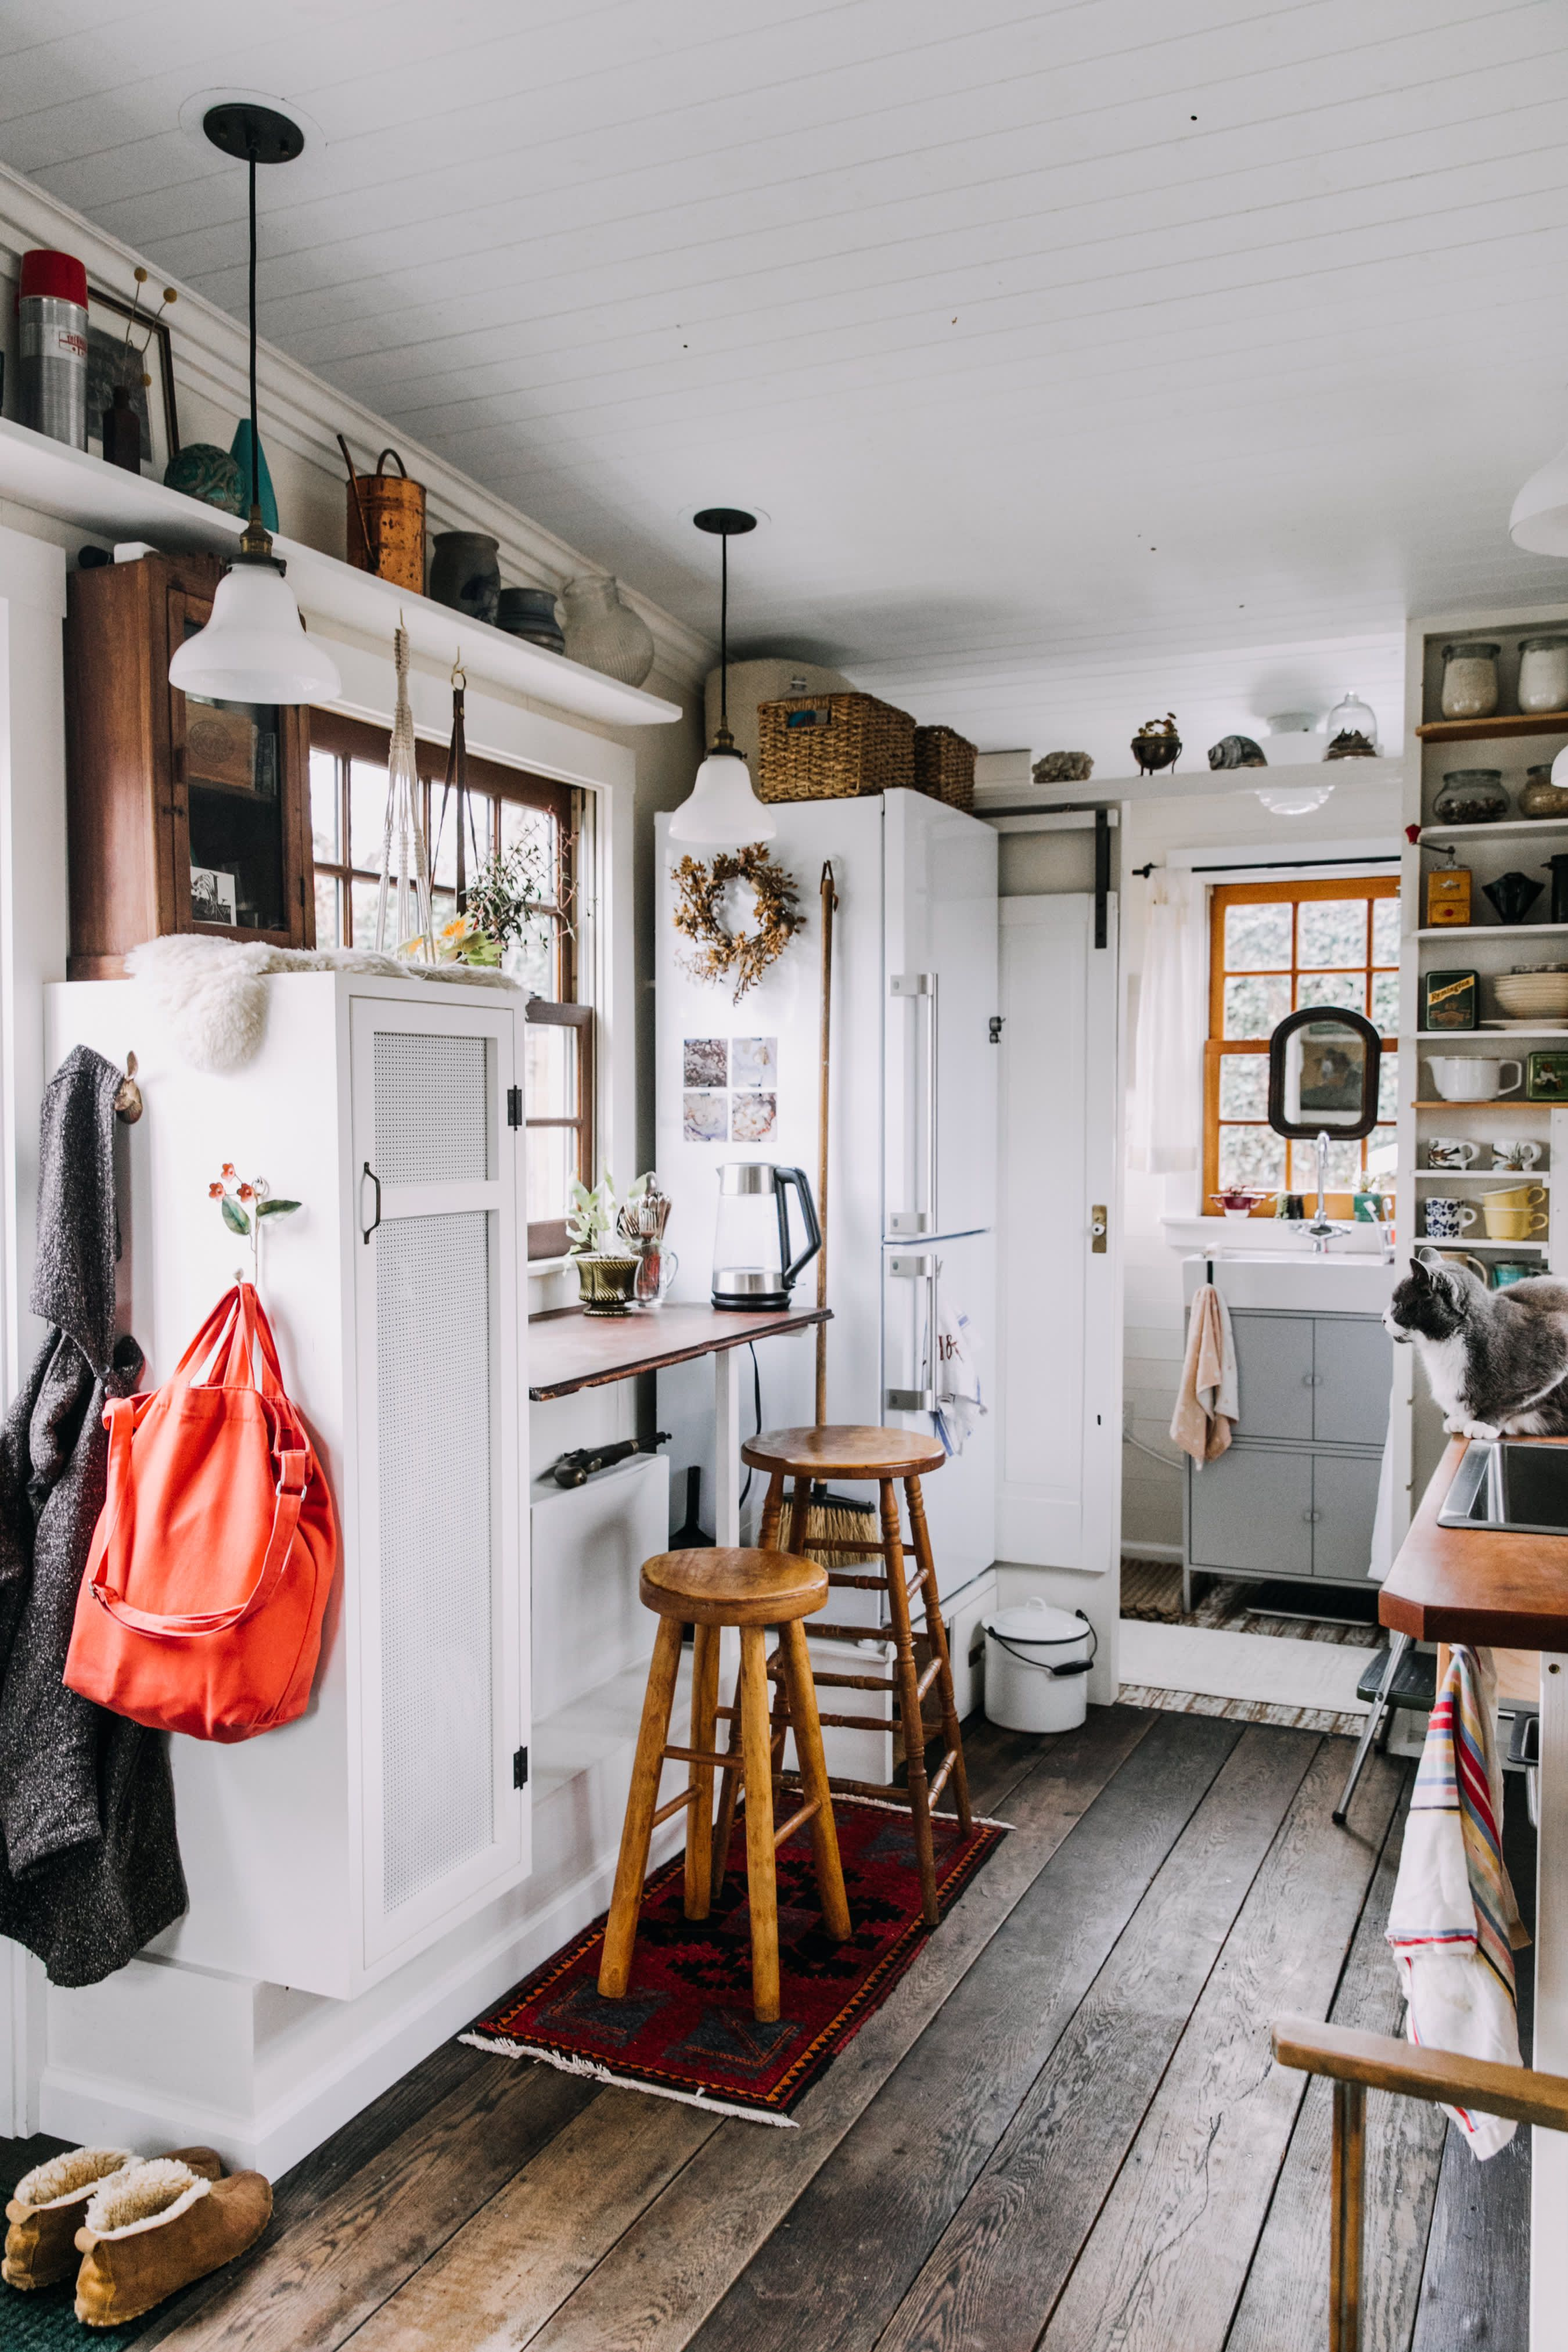 5 Big Organizing Lessons We Learned From This 160 Square Foot Tiny House Tiny House Kitchen Tiny House Storage Tiny House Interior Design